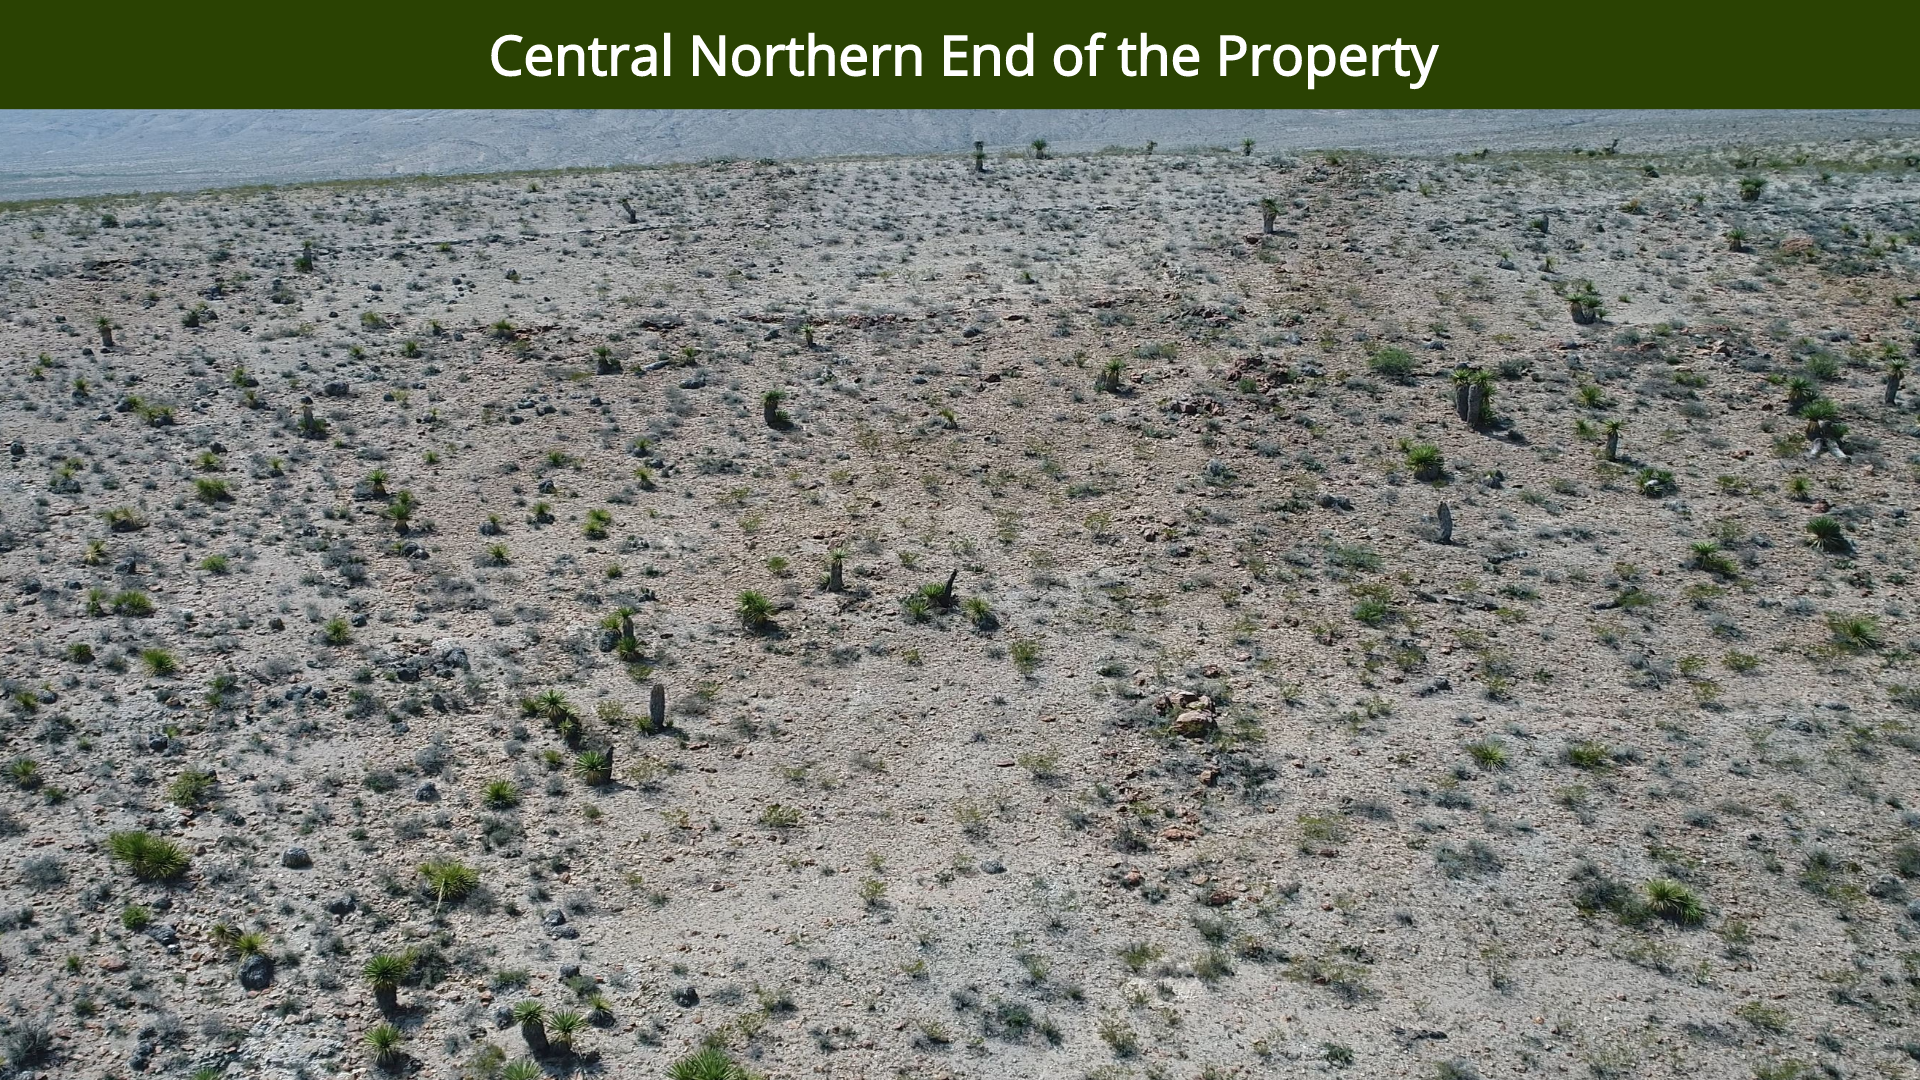 Central Northern End of the Property